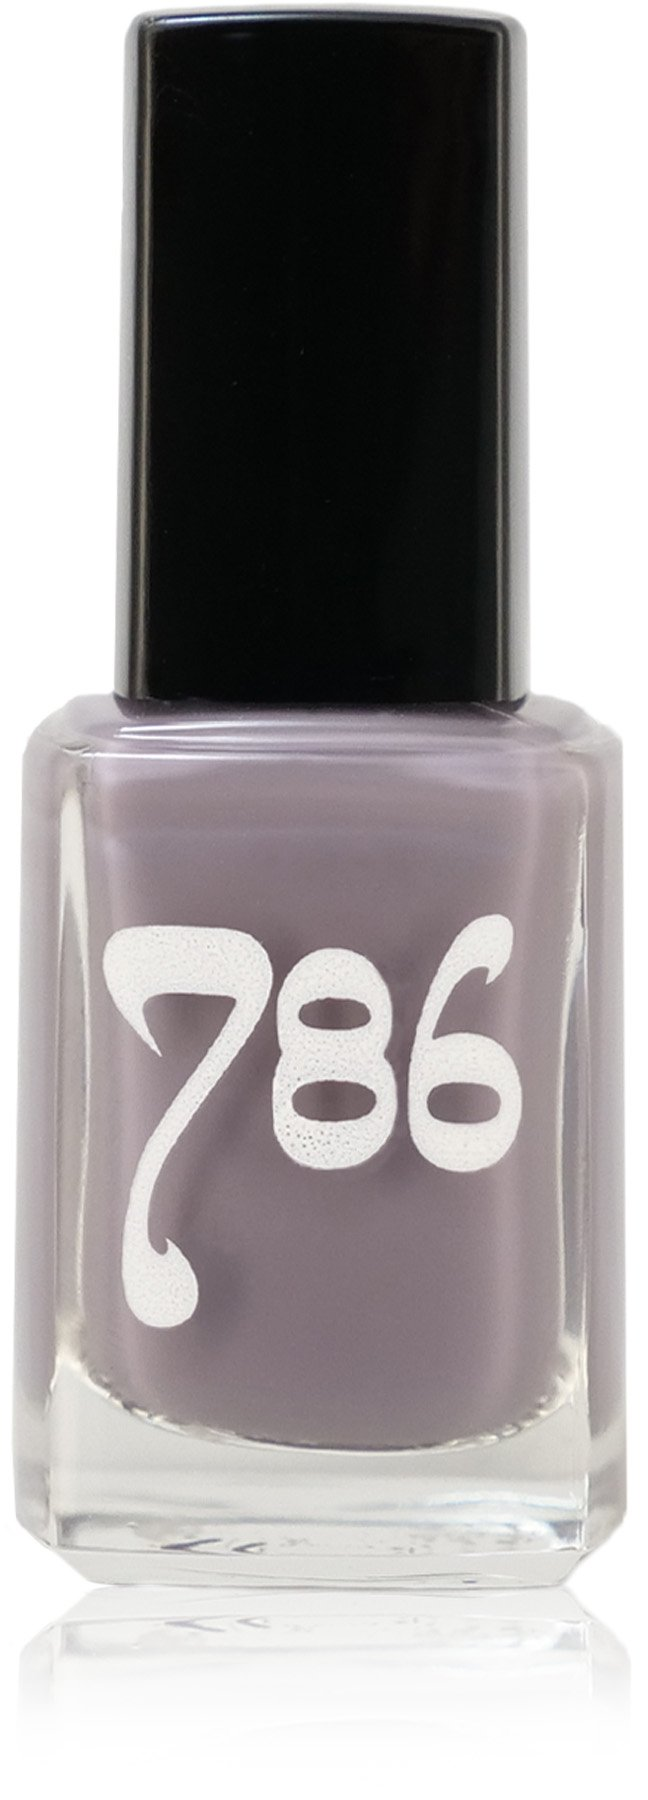 Amazon.com: 786 Cosmetics Halal Nail Polish - Wudhu Friendly - Vegan ...